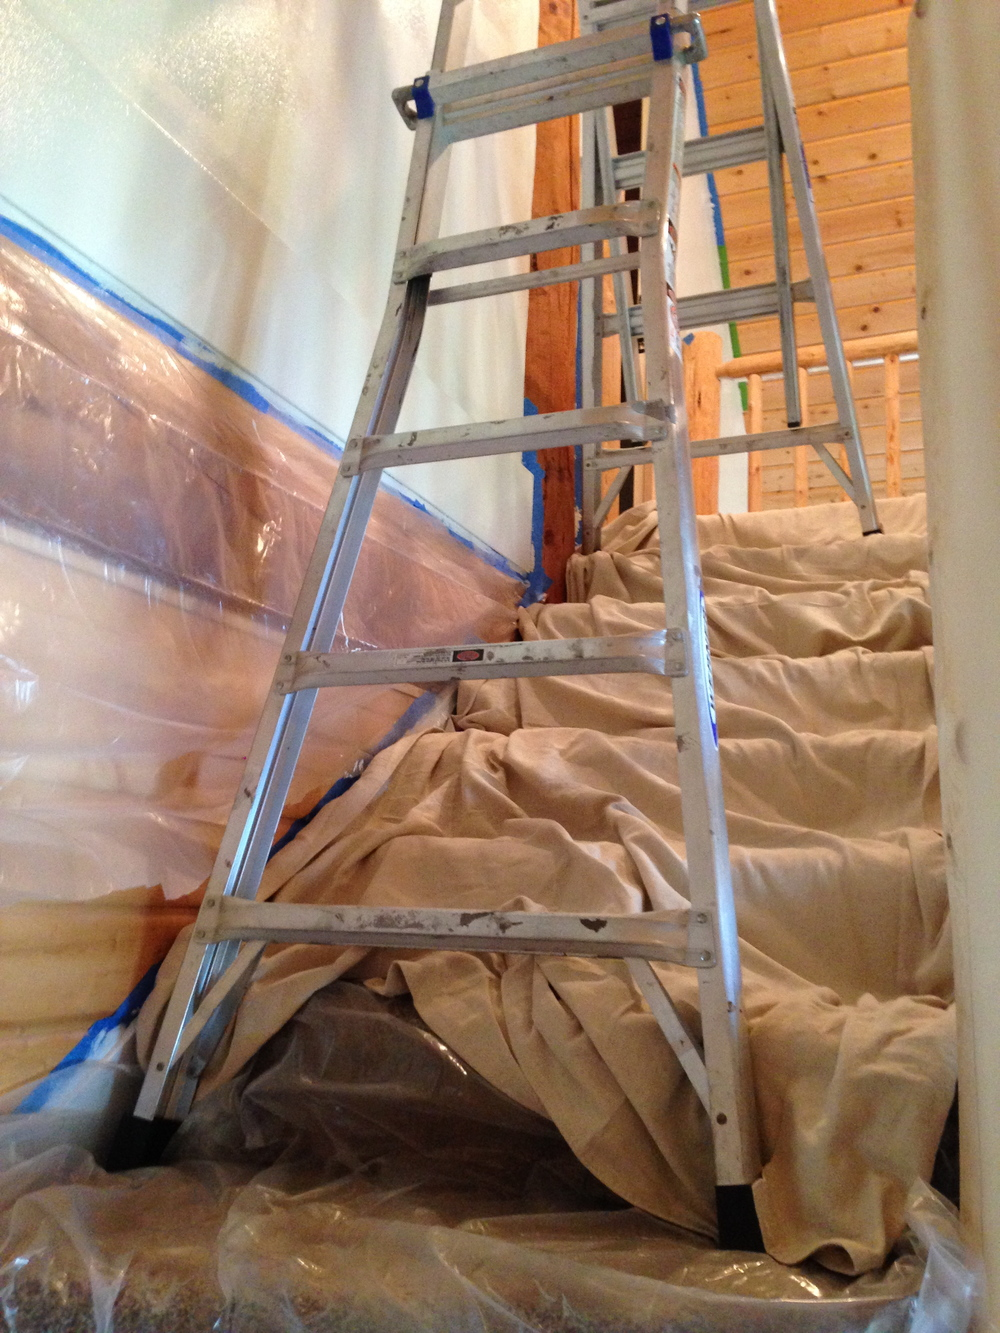 This ladder is made for stairs, still looks sketchy! Painting the new wall.